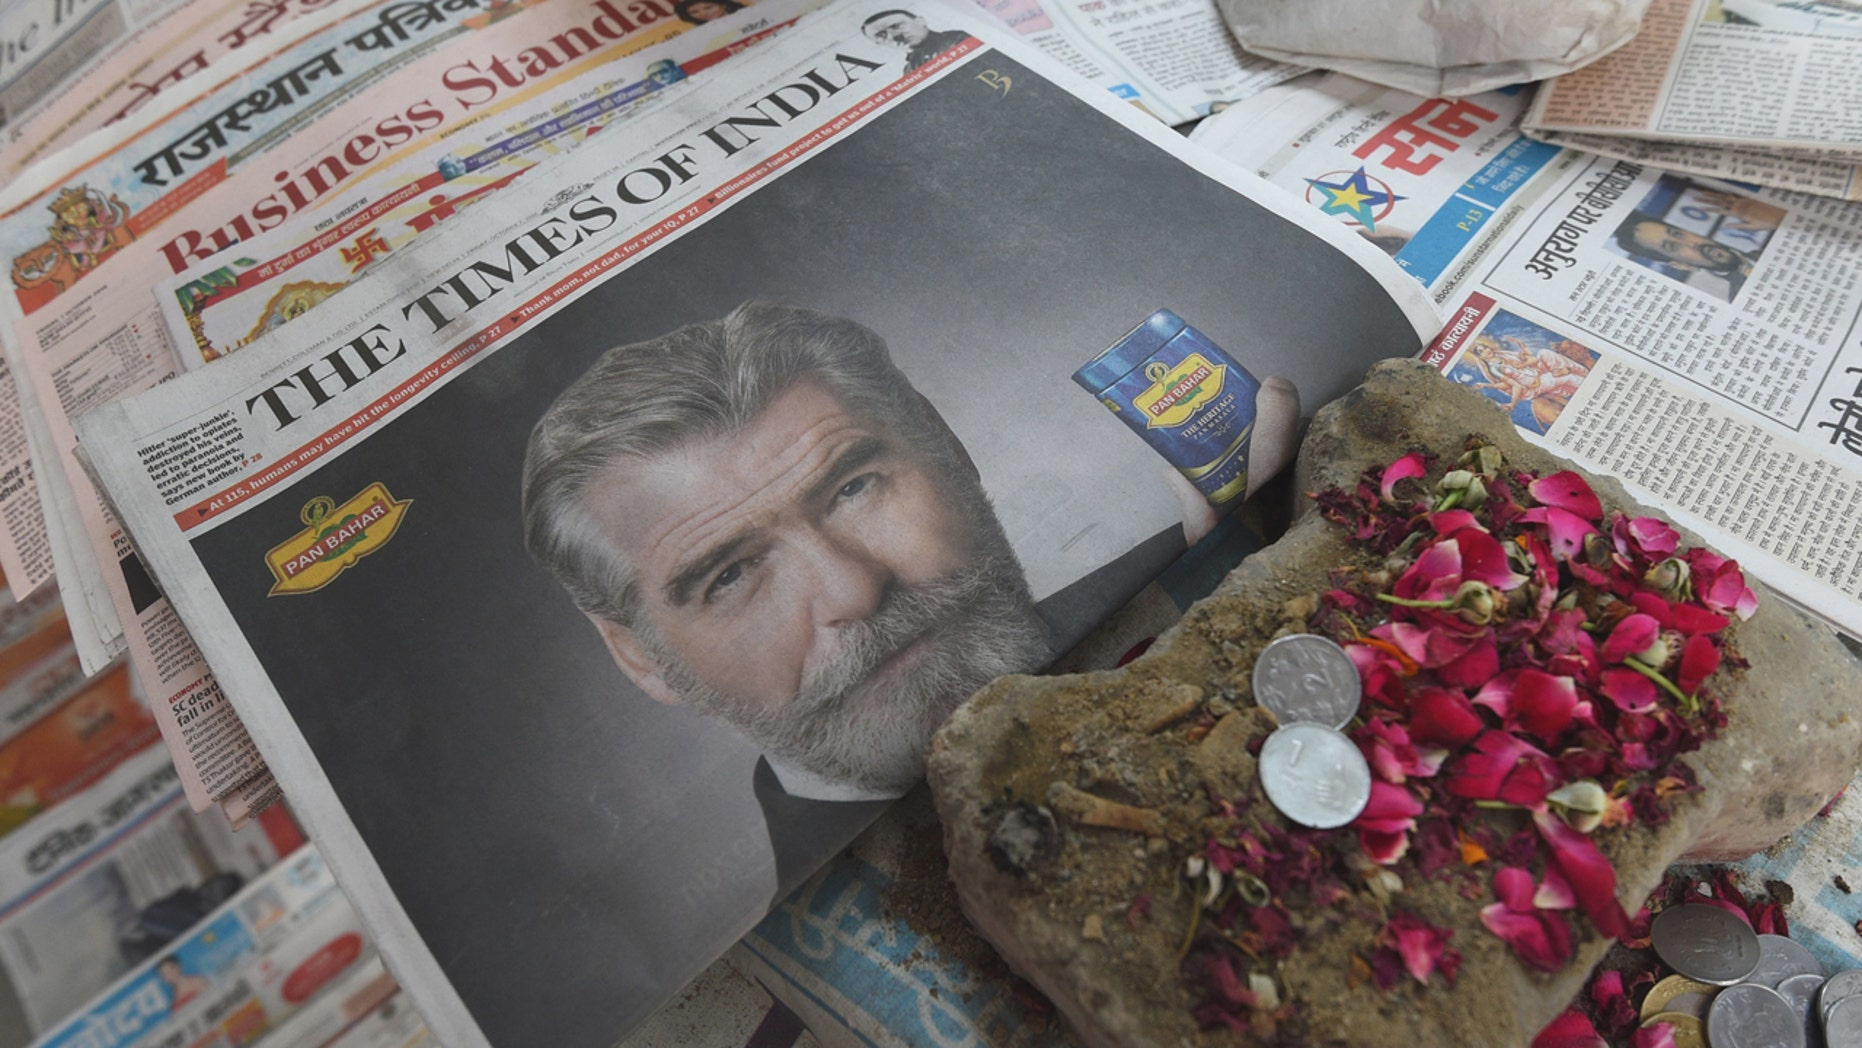 A newspaper with a front page advertisment of former 007 star Pierce Brosnan endorsing an Indian mouth freshener, is seen on the streets of New Delhi on October 7, 2016. Former 007 star Pierce Brosnan sparked ridicule on social media October 7, 2016 by starring in a new James Bond-style spoof commercial for an Indian mouth freshener that left fans shaken and stirred. / AFP / DOMINIQUE FAGET        (Photo credit should read DOMINIQUE FAGET/AFP/Getty Images)